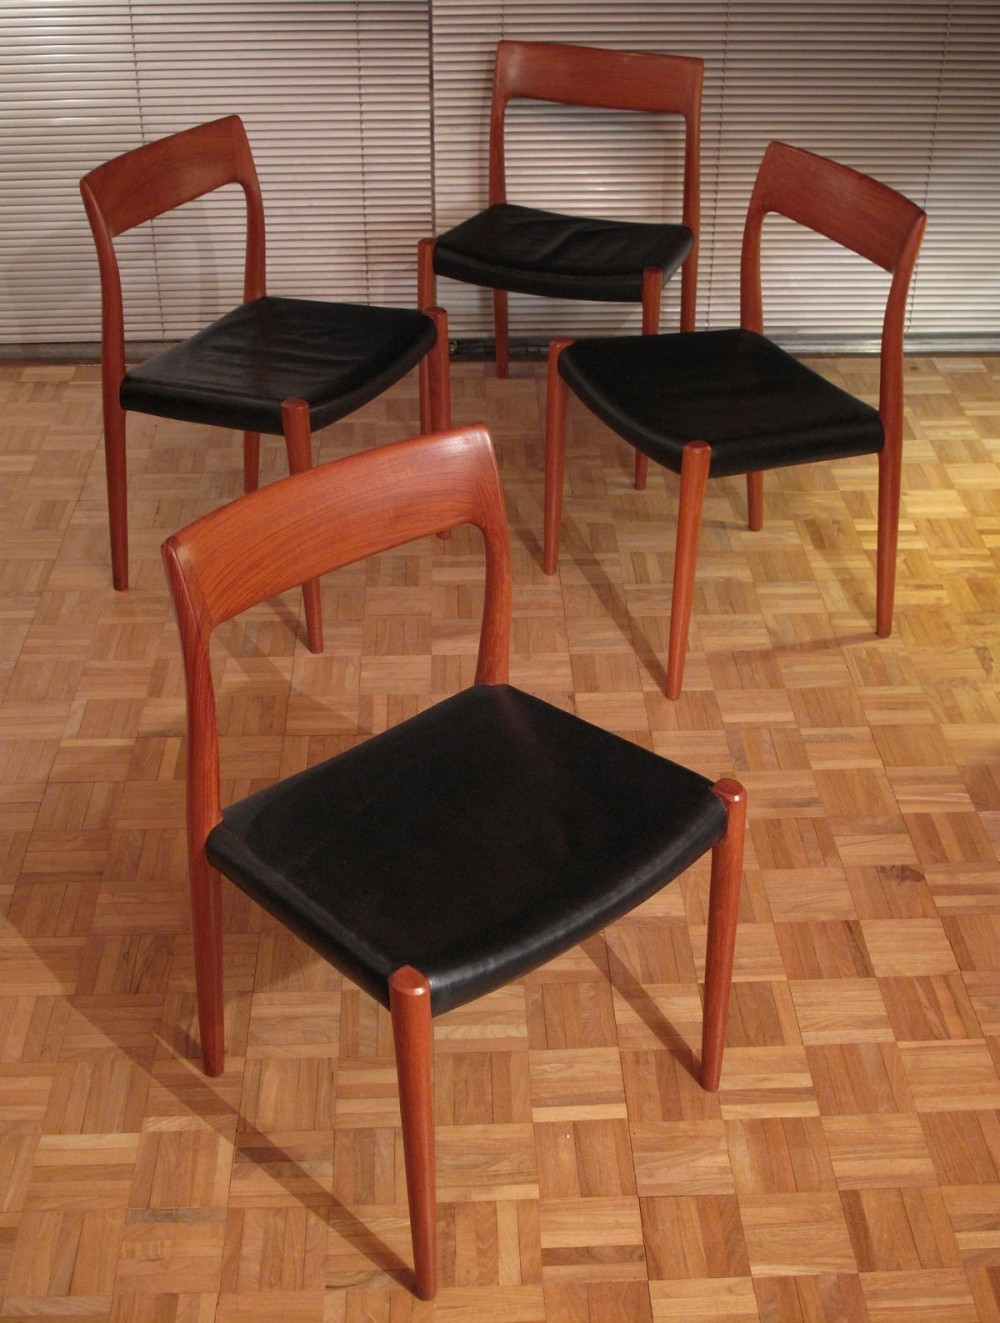 Niels moller model 77 teak black leather chairs 61901 for Affordable modern furniture miami